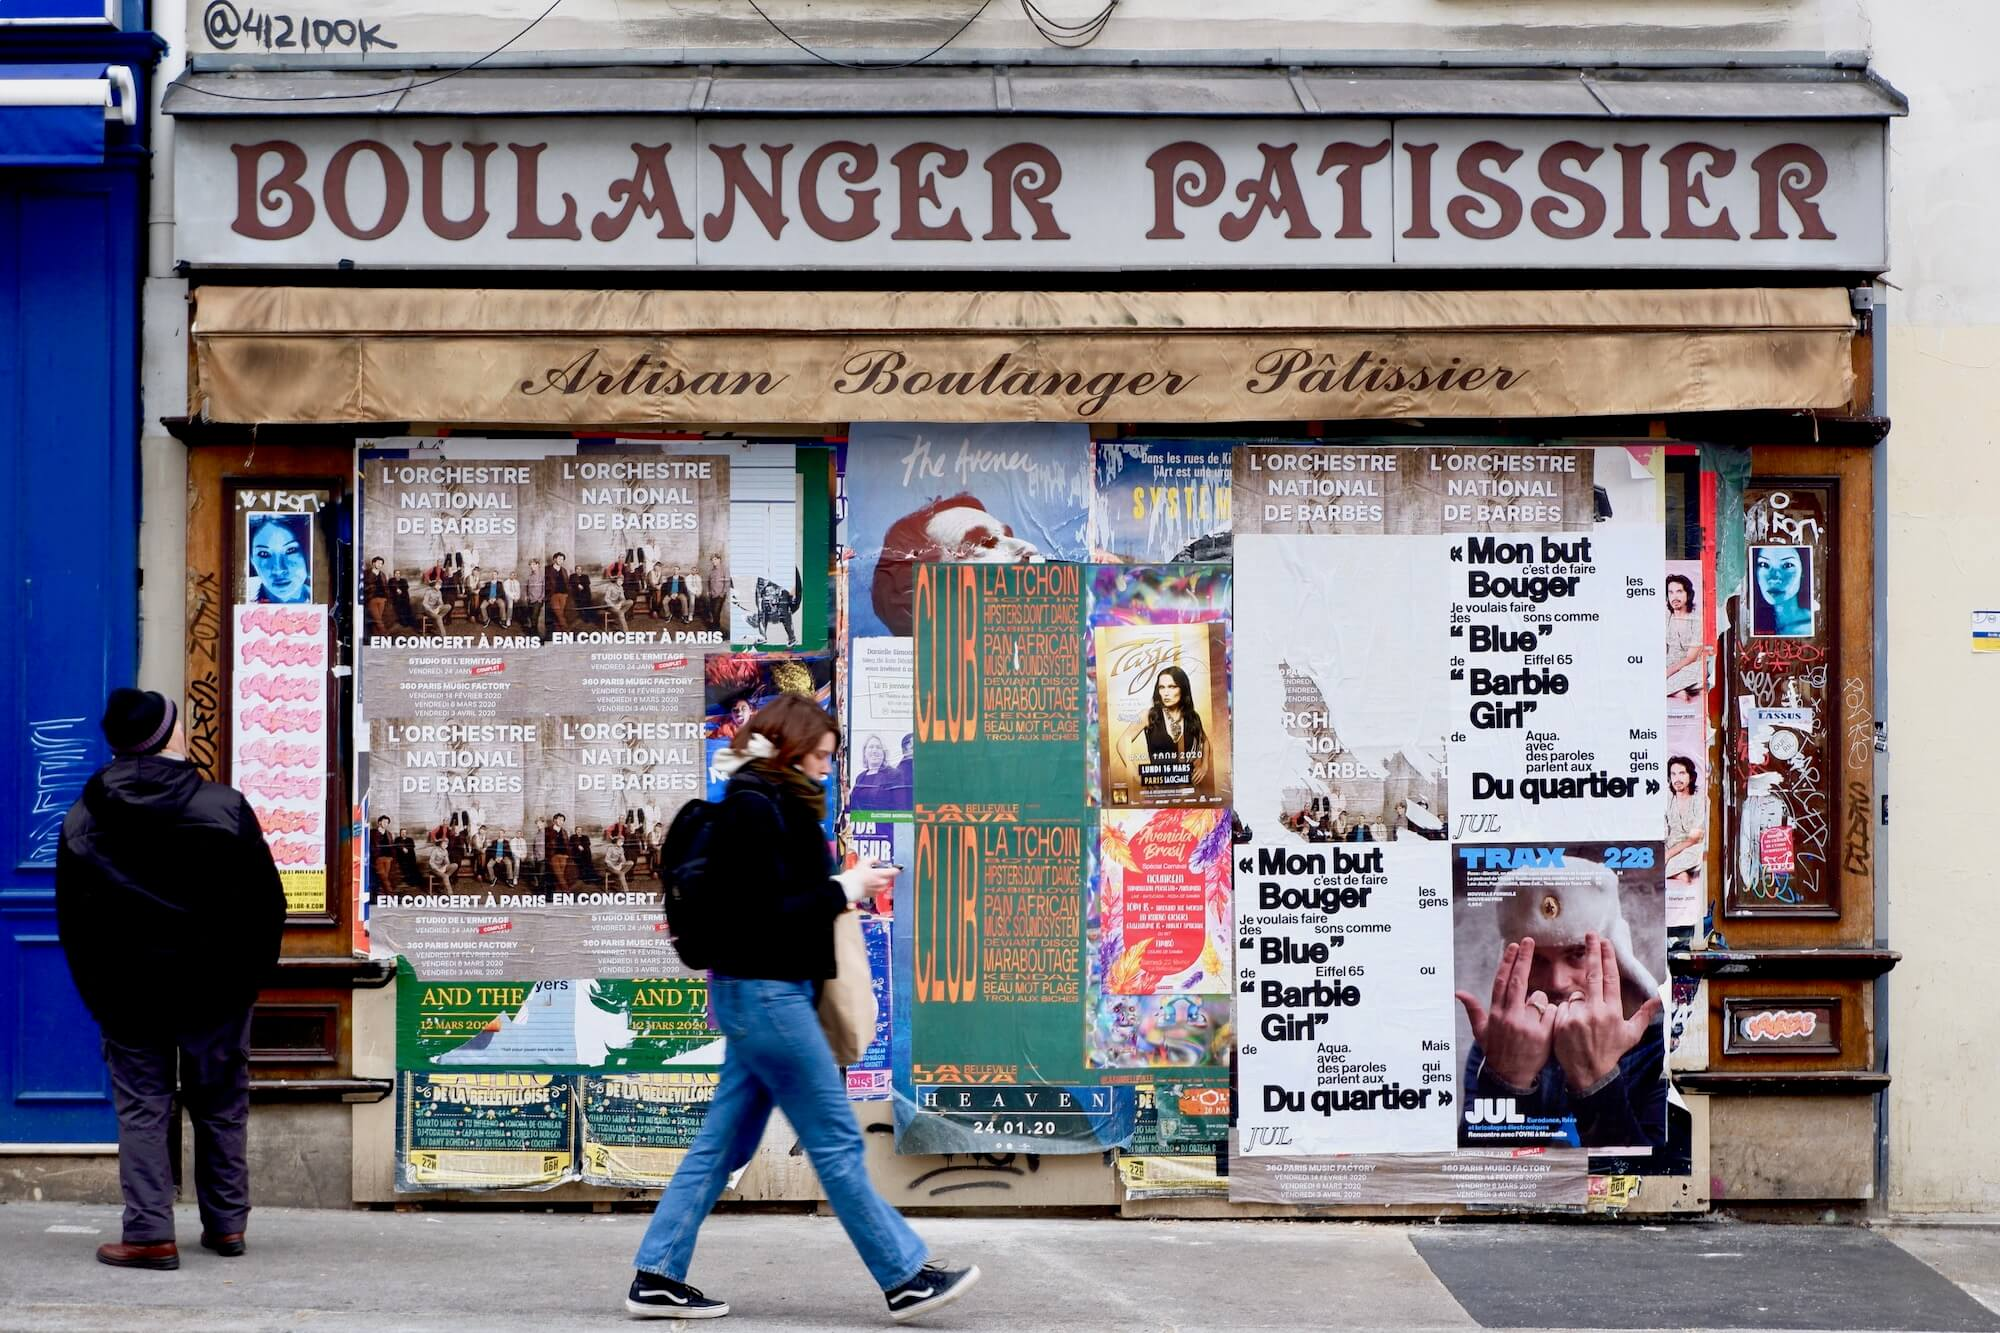 An old boulanger/patissier that has been covered in promotional music posters. An elderly man to the left is looking up at the posters while a young woman is walking past, slightly blurred.